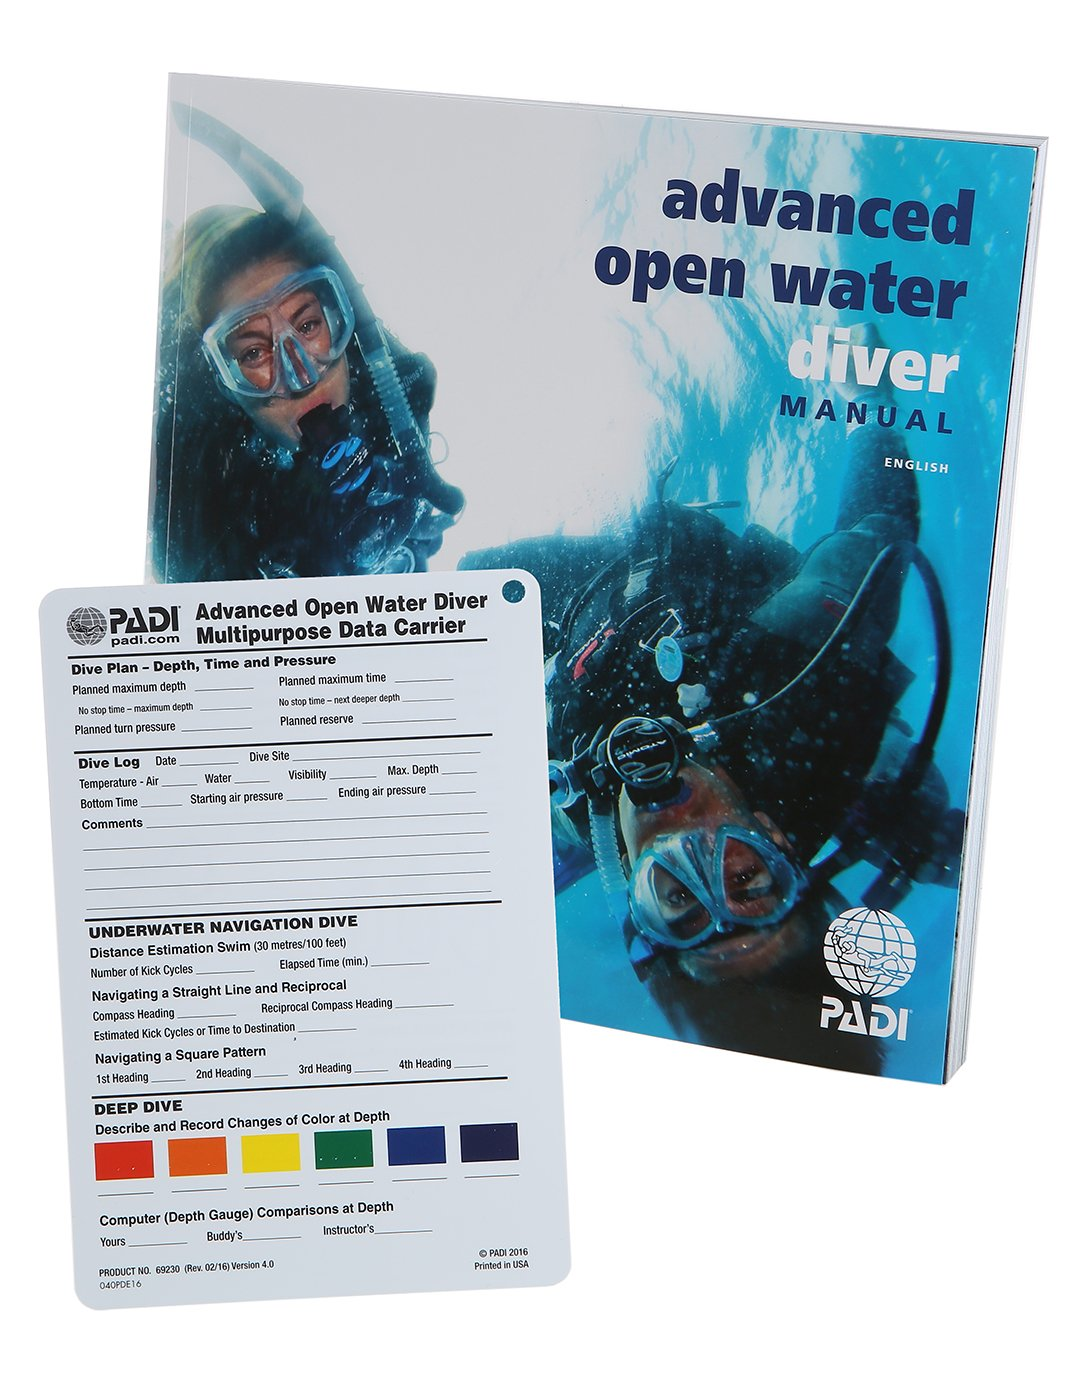 Image of PADI Advanced Open Water Manual